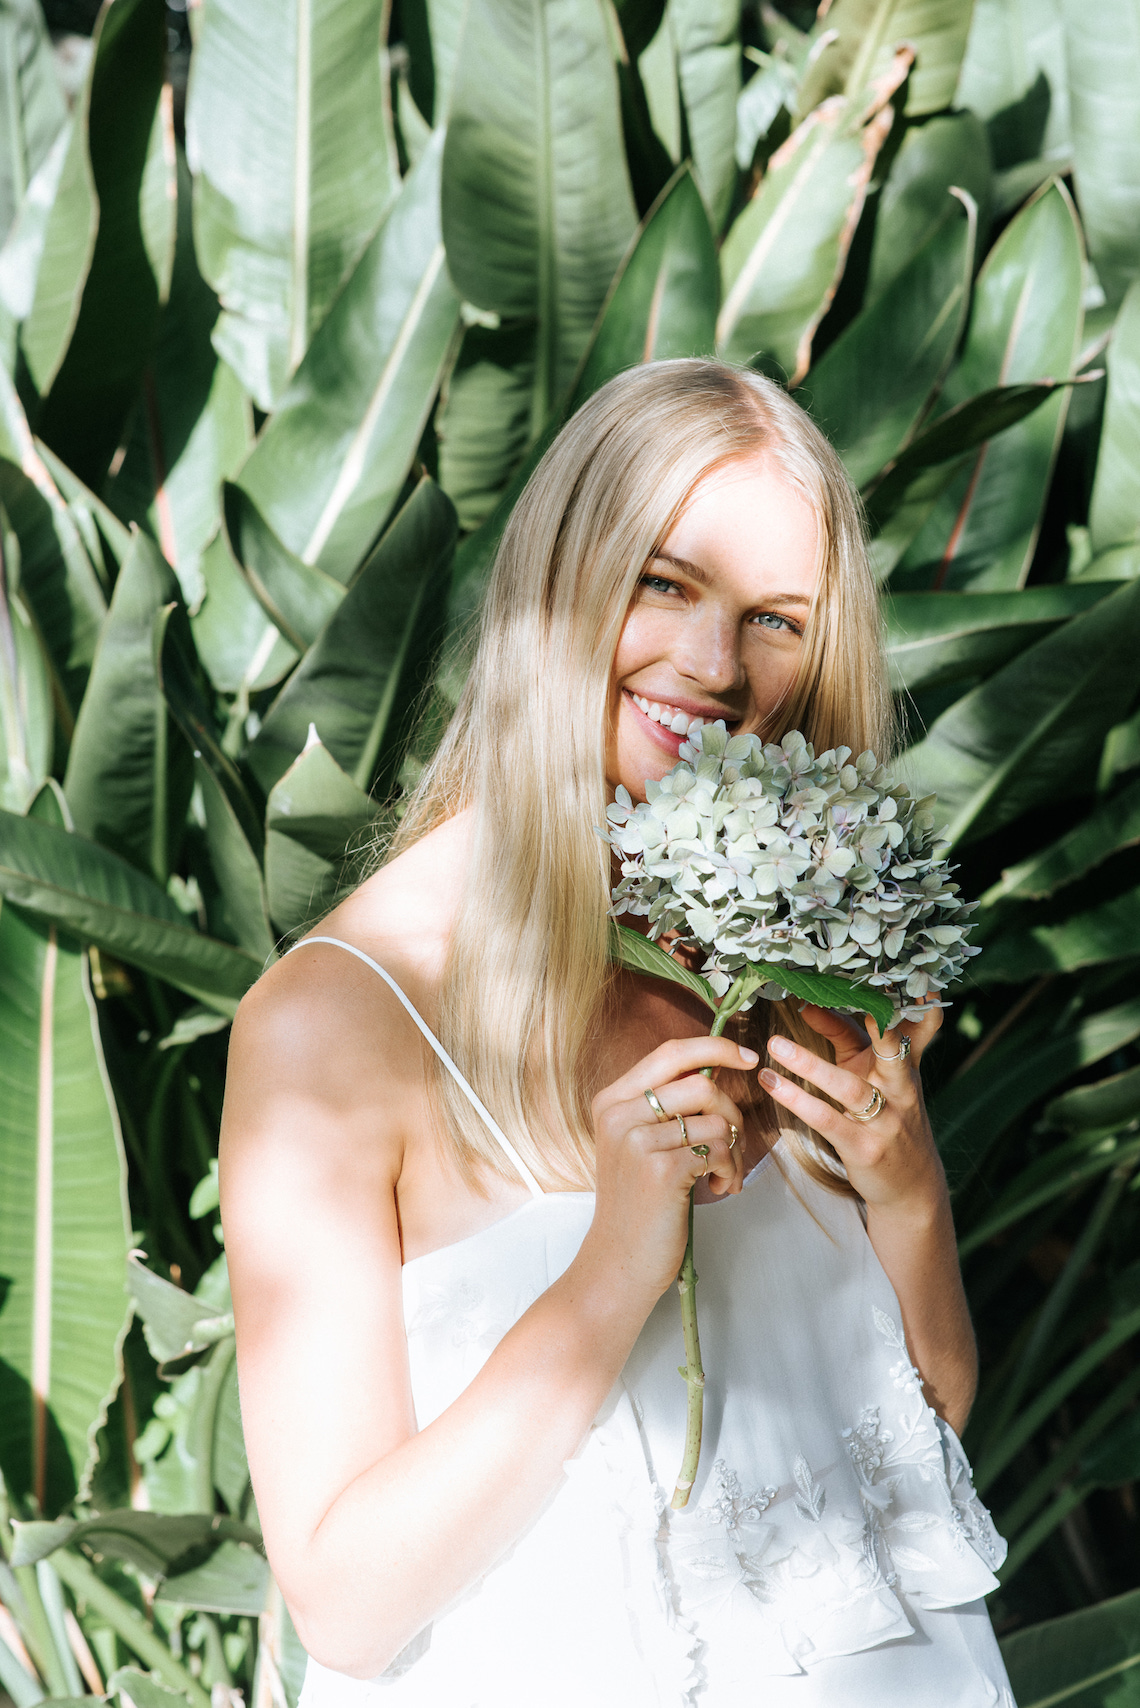 Ethereal Garden South African Wedding Inspiration With Ultra Cool Wedding Dresses – Marilyn Bartman 22